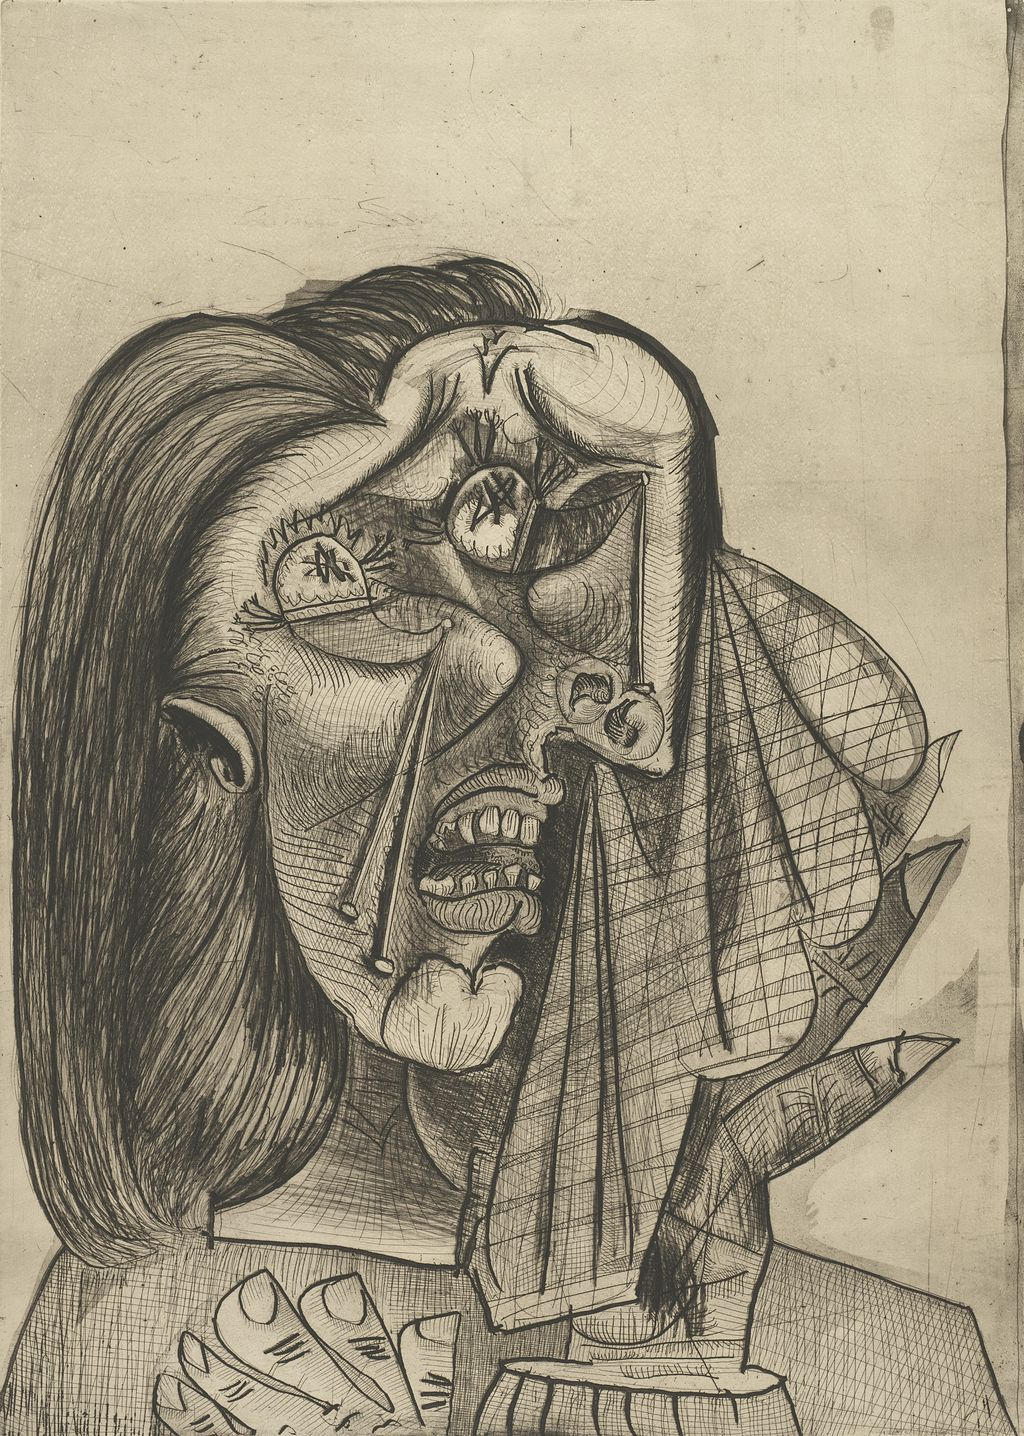 Pablo Picasso. Weeping Woman I, 1937. The Art Institute of Chicago, through prior acquisition of the Martin A. Ryerson Collection with the assistance of the Noel and Florence Rothman Family and the Margaret Fisher Endowment. © 2013 Estate of Pablo Picasso / Artists Rights Society (ARS), New York.